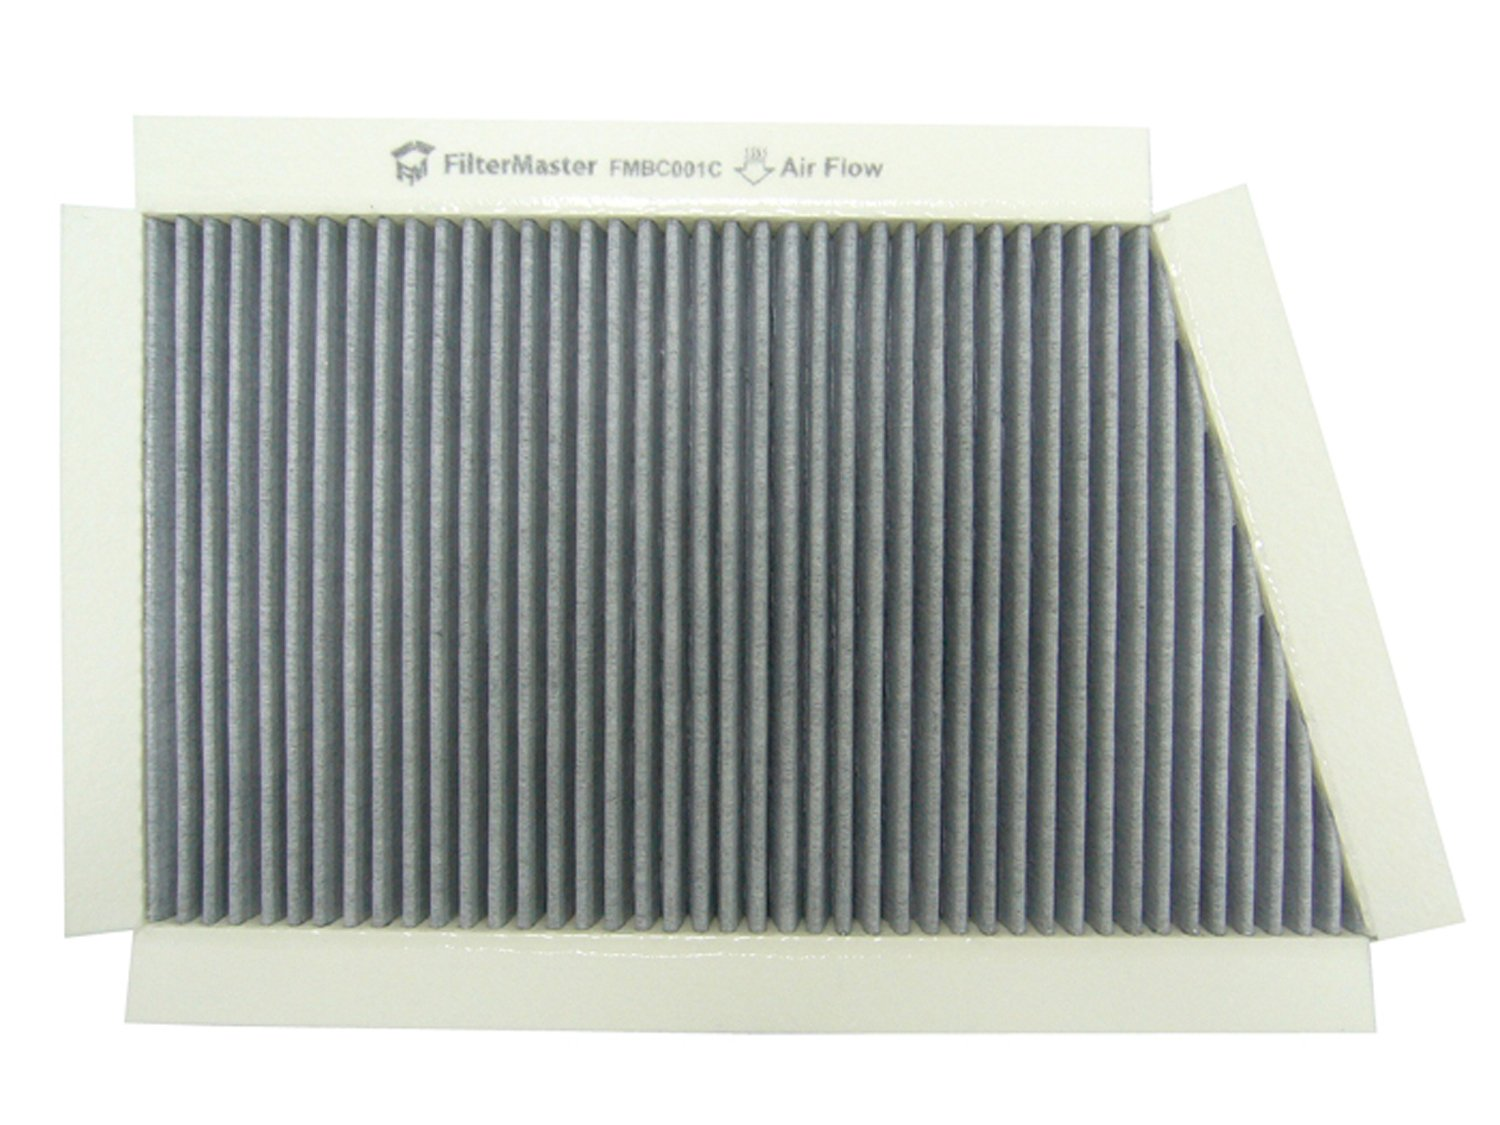 FilterMaster FMB-C001C Activated Carbon Cabin Air Filter for Mercedes-Benz C-Class